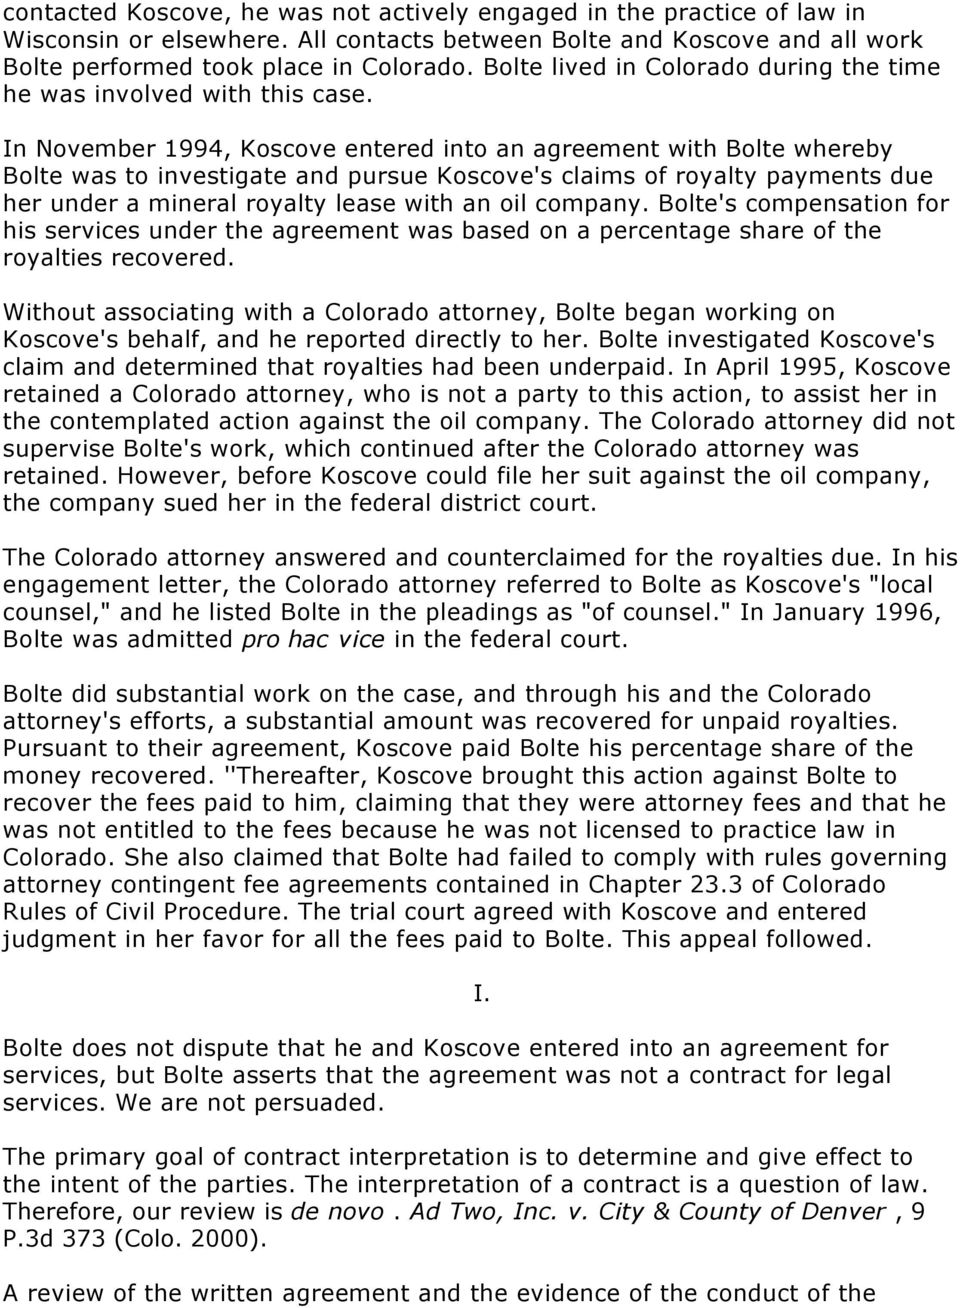 In November 1994, Koscove entered into an agreement with Bolte whereby Bolte was to investigate and pursue Koscove's claims of royalty payments due her under a mineral royalty lease with an oil